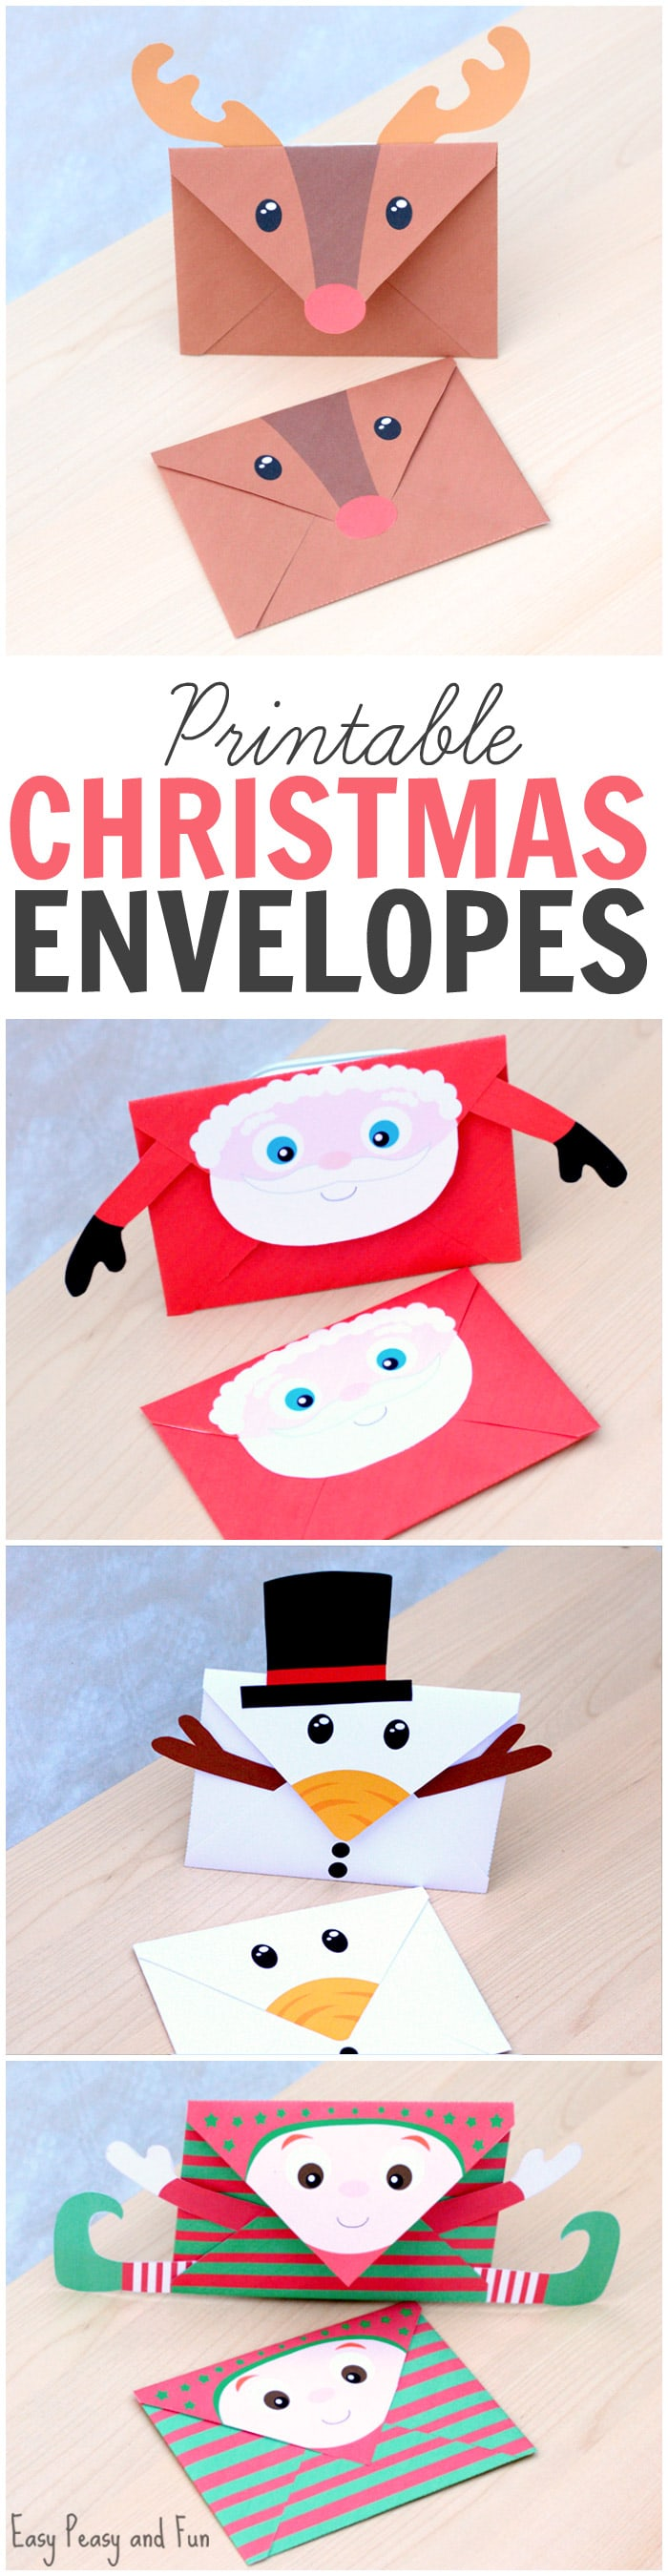 photograph regarding Printable Santa Envelopes identify Printable Xmas Envelopes - Simple Peasy and Enjoyable